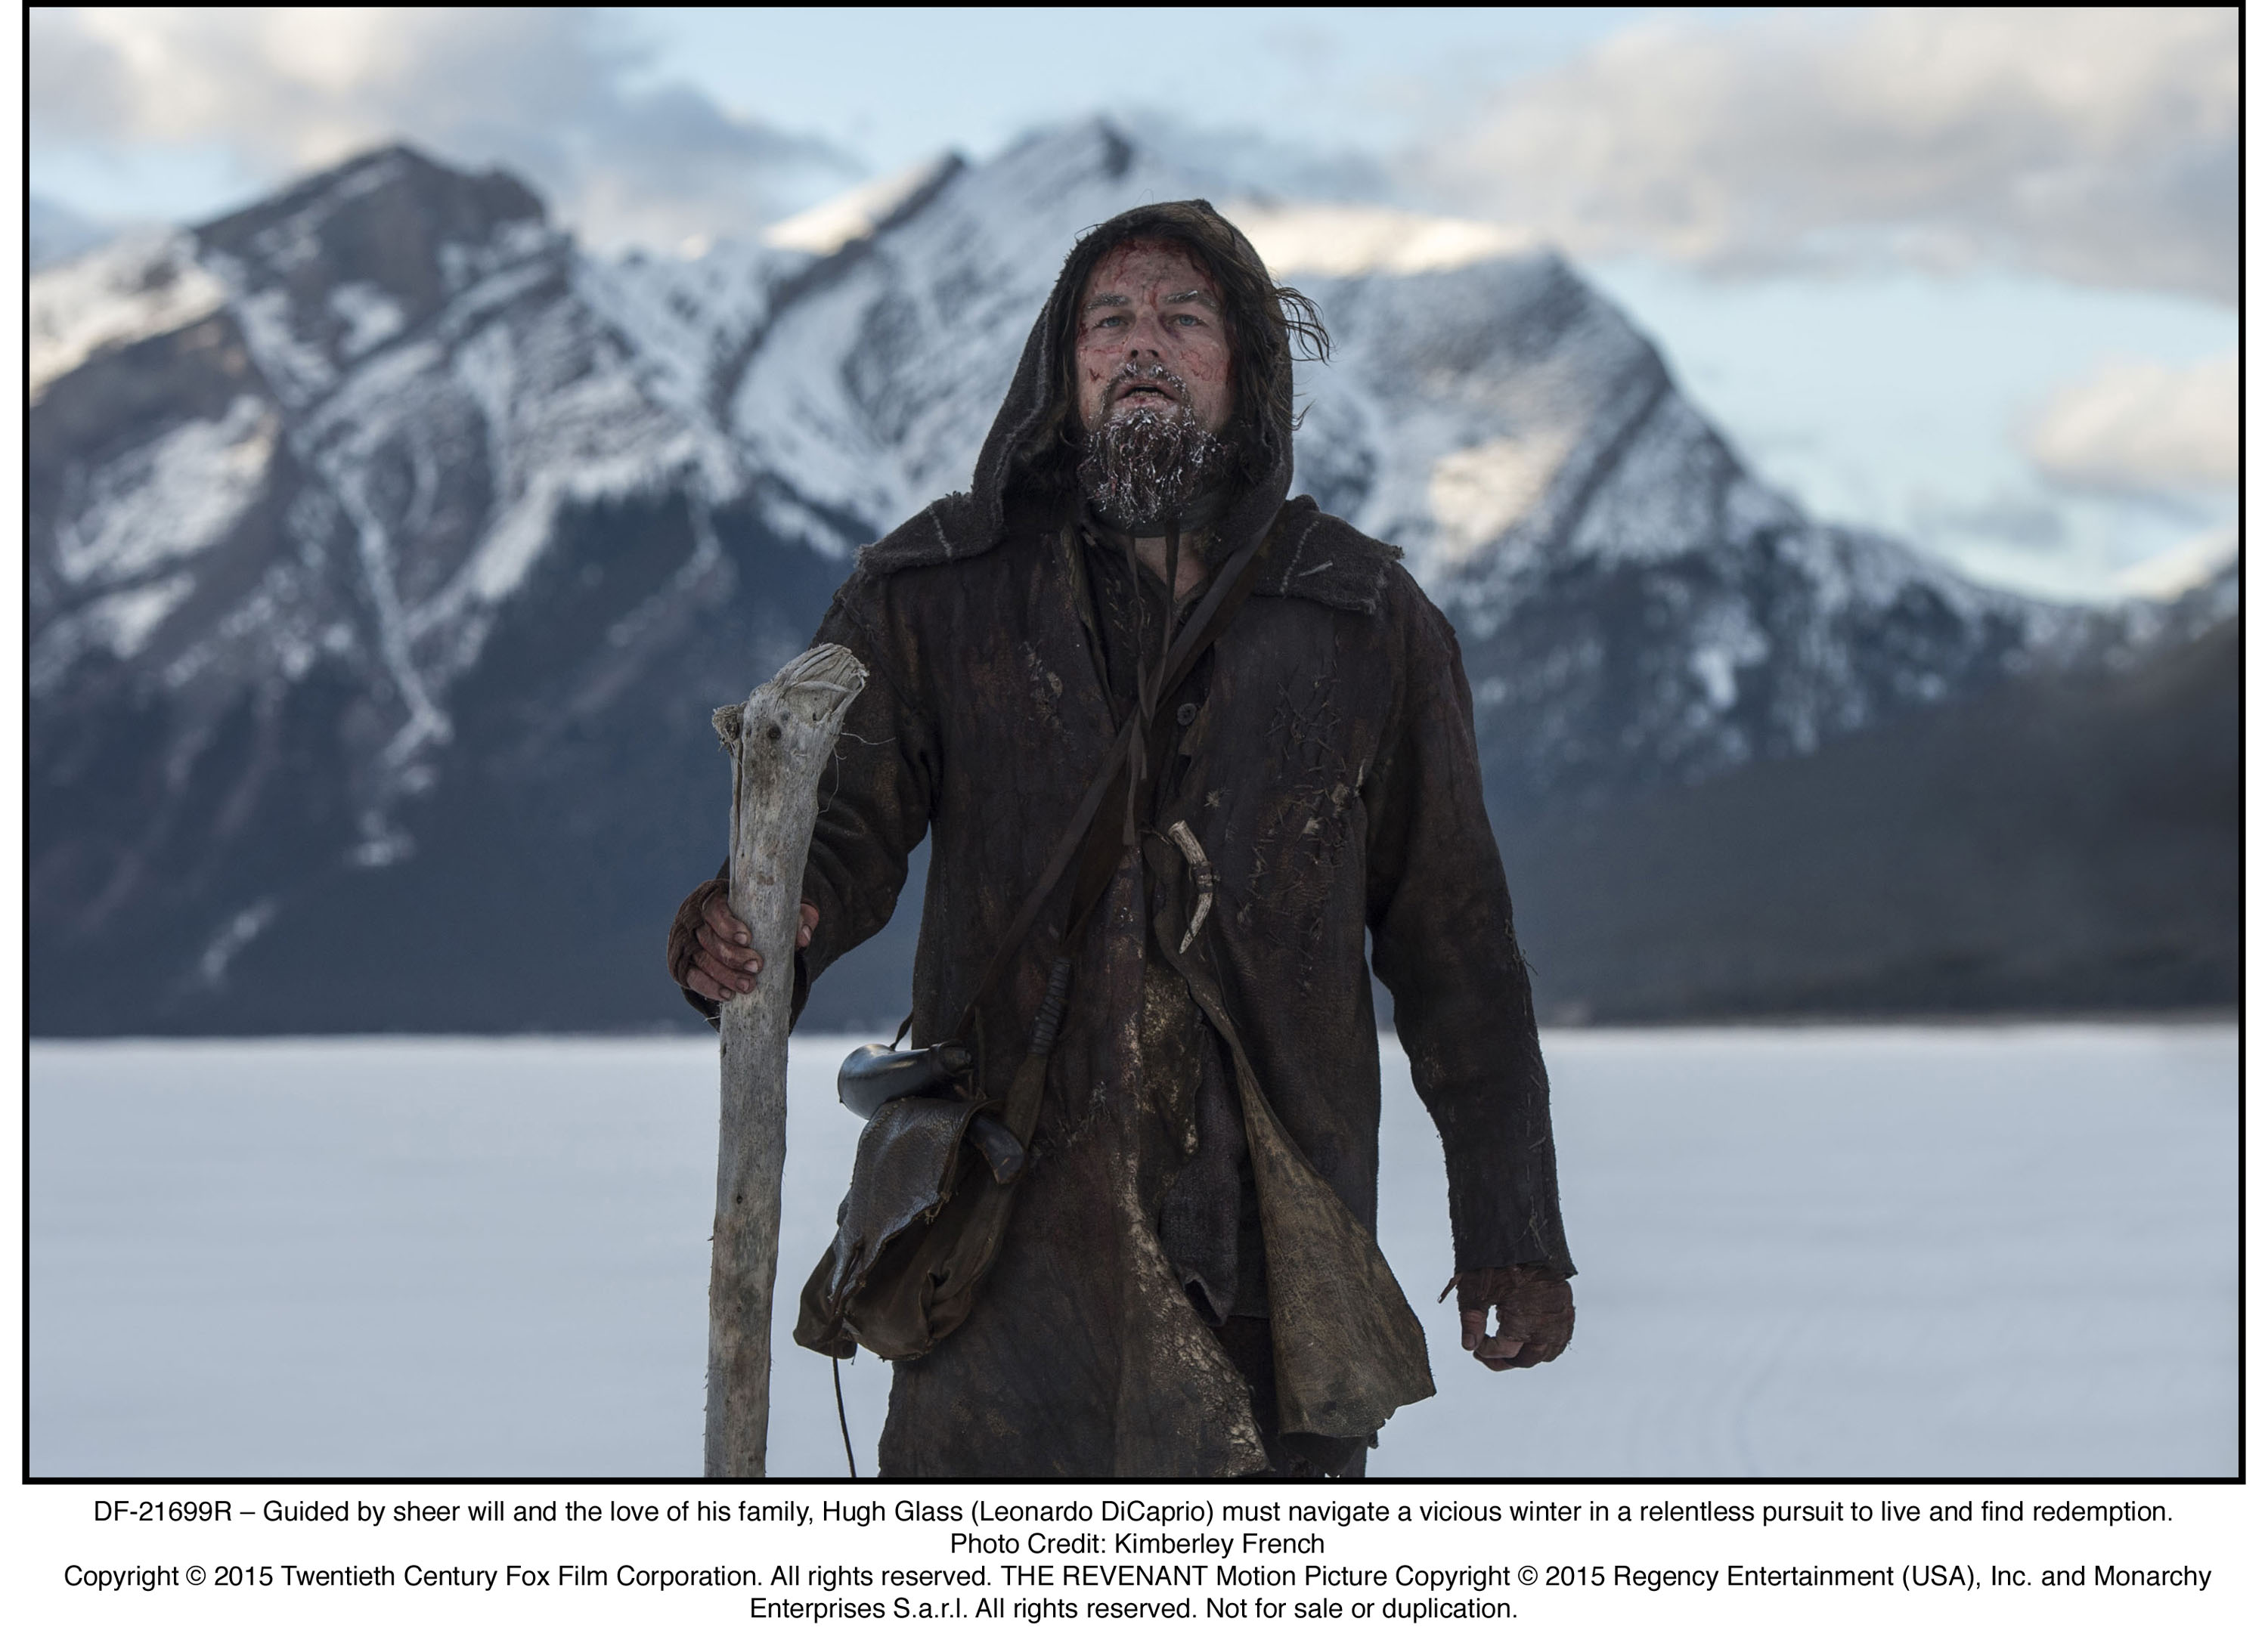 The Revenant Leo DiCaprio DF 21699R